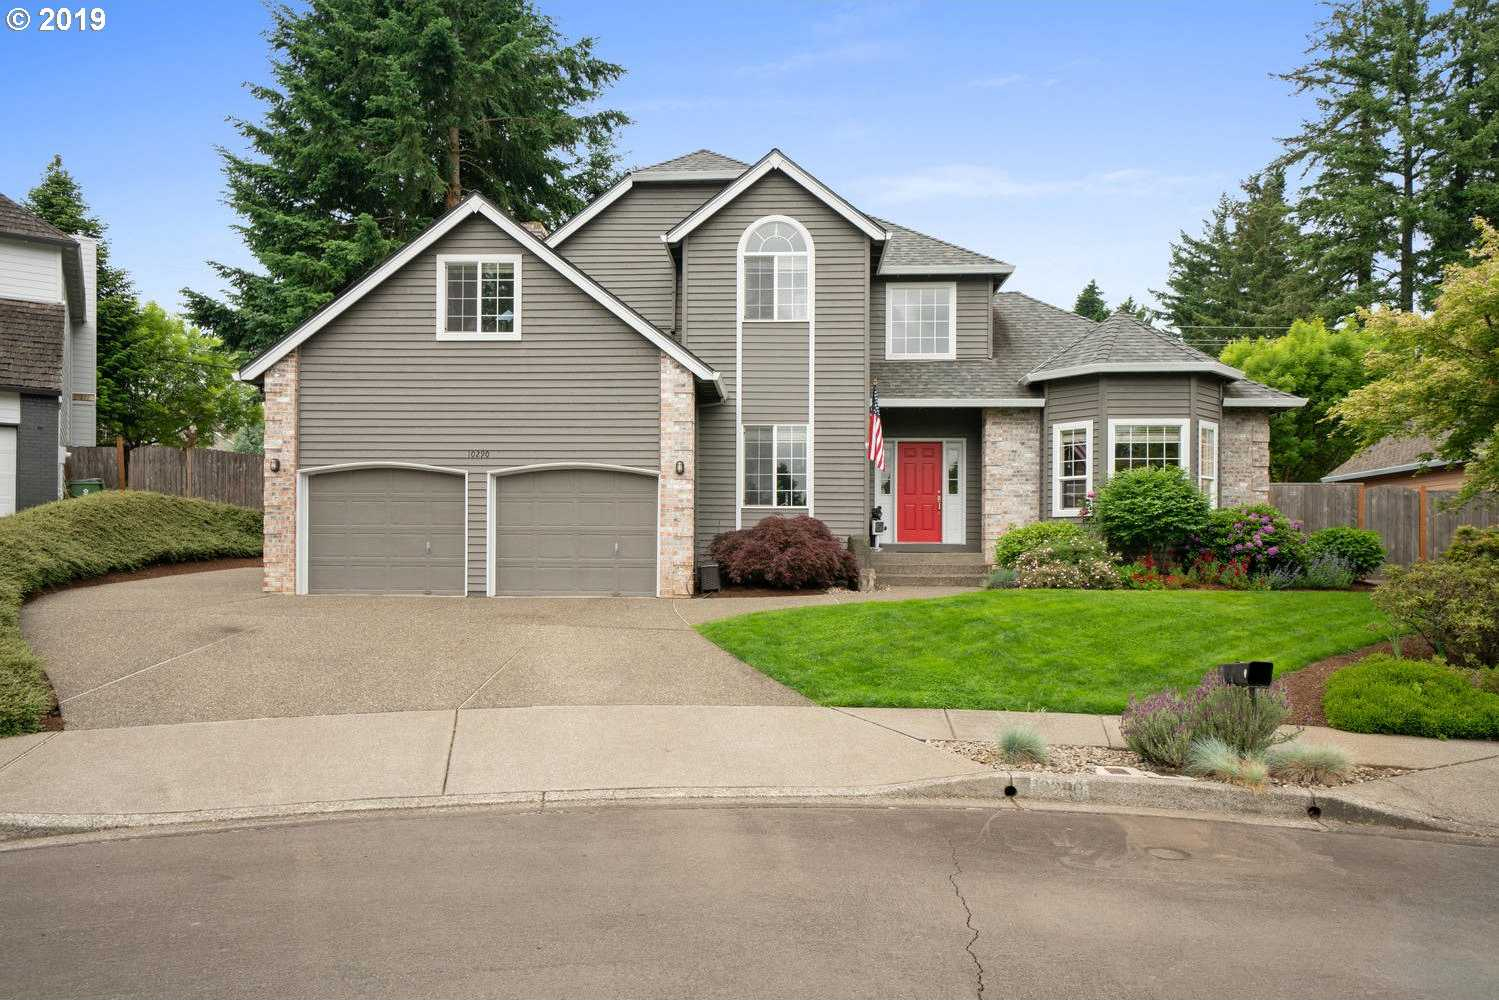 $529,900 - 4Br/3Ba -  for Sale in Tualatin